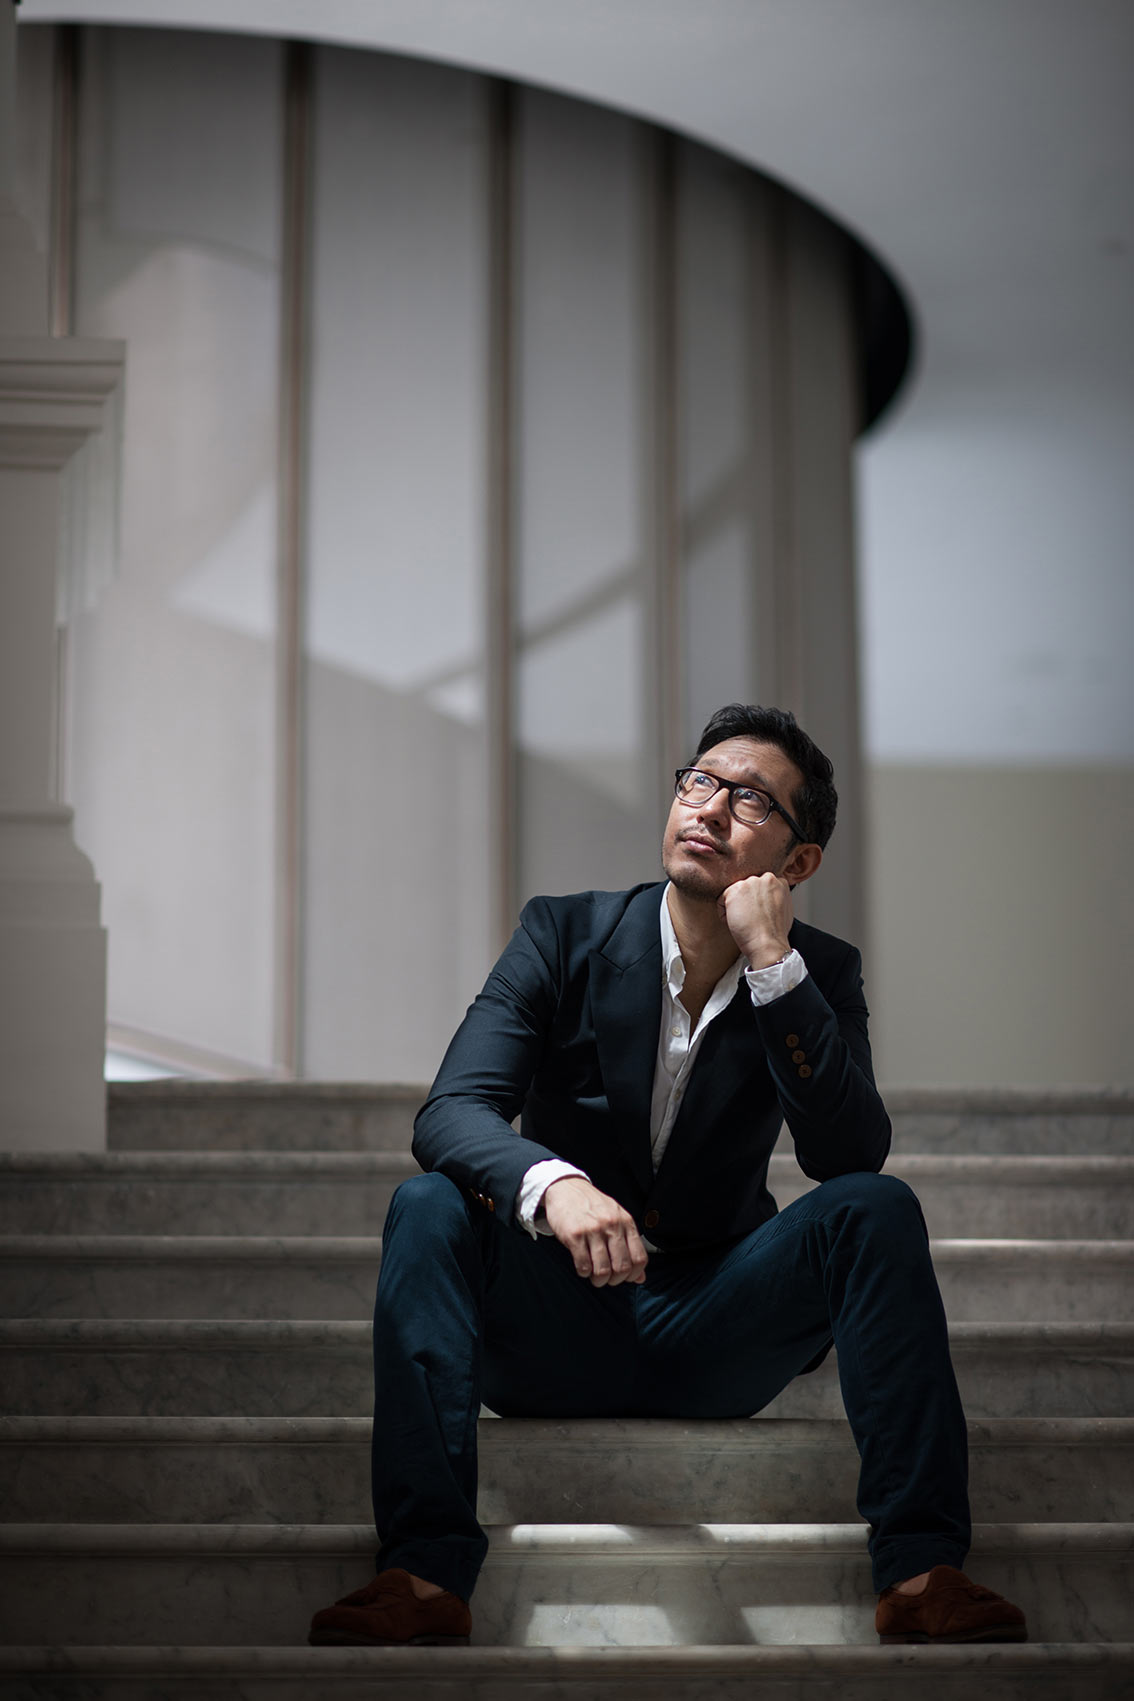 portrait photography, Jason Lai, Associate Conductor, Singapore Symphony Orchestra, Victoria Concert Hall, natural light